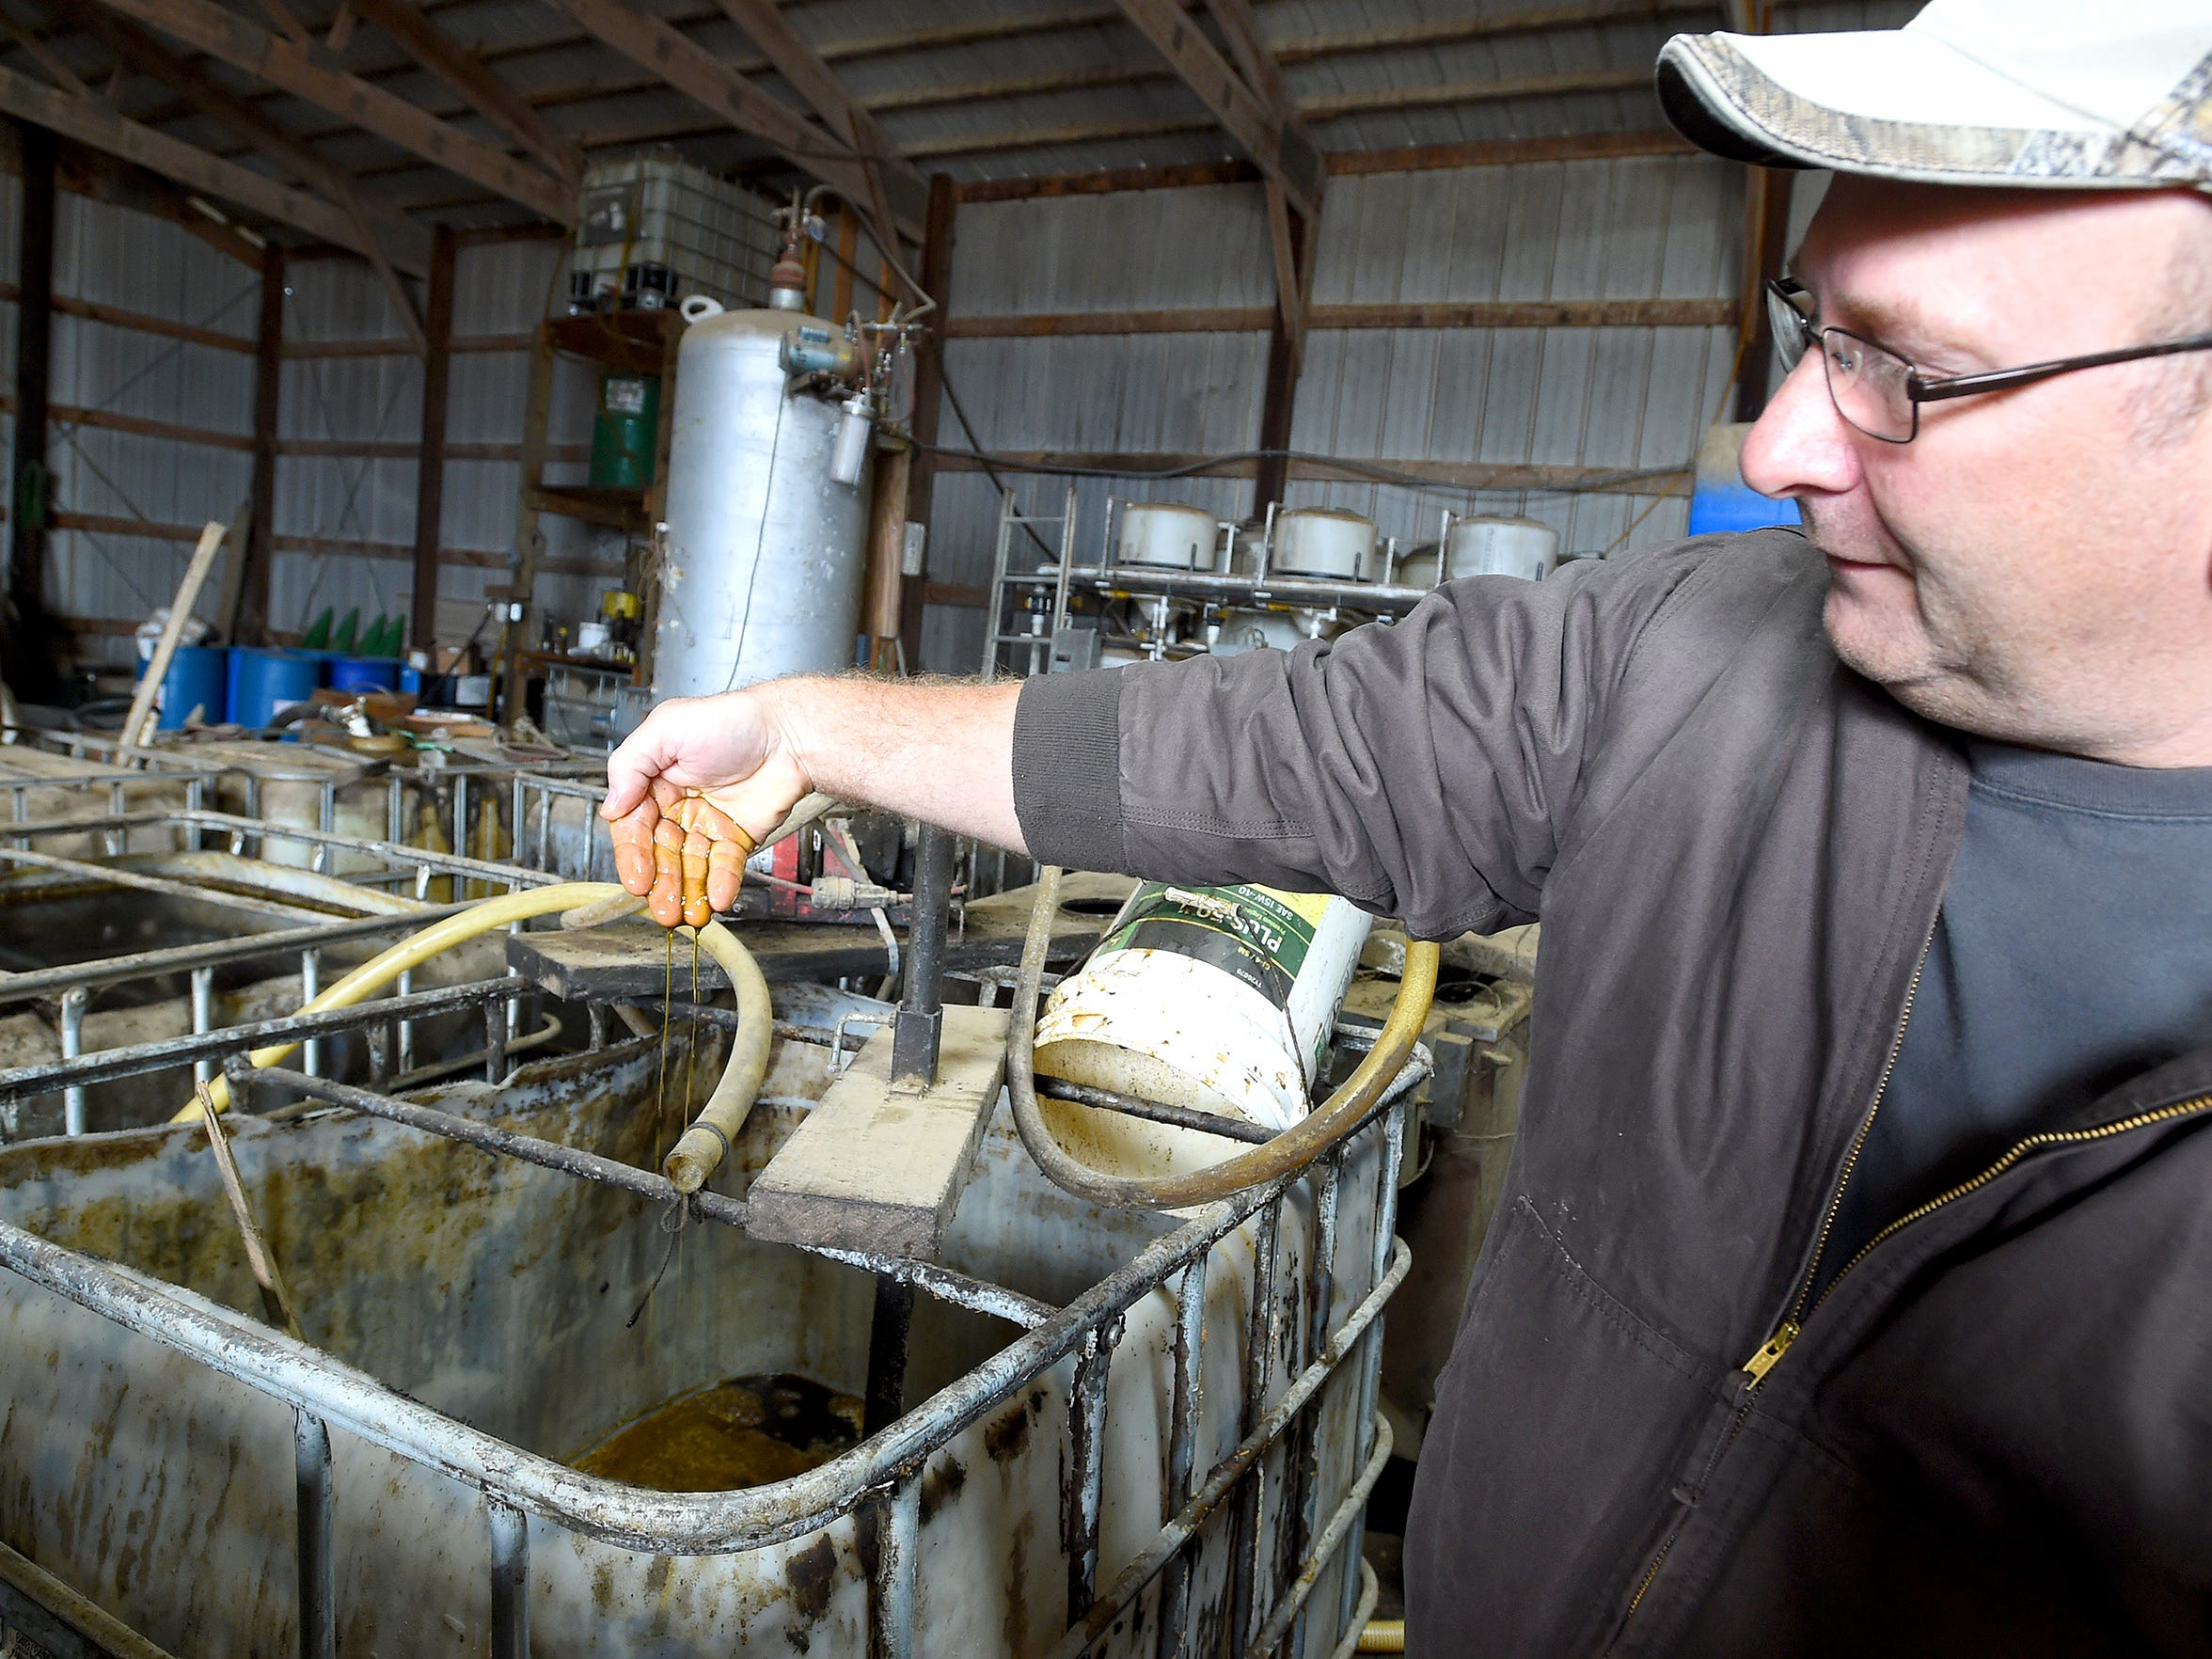 Glenn Rodes shows hemp seed oil harvested and collected